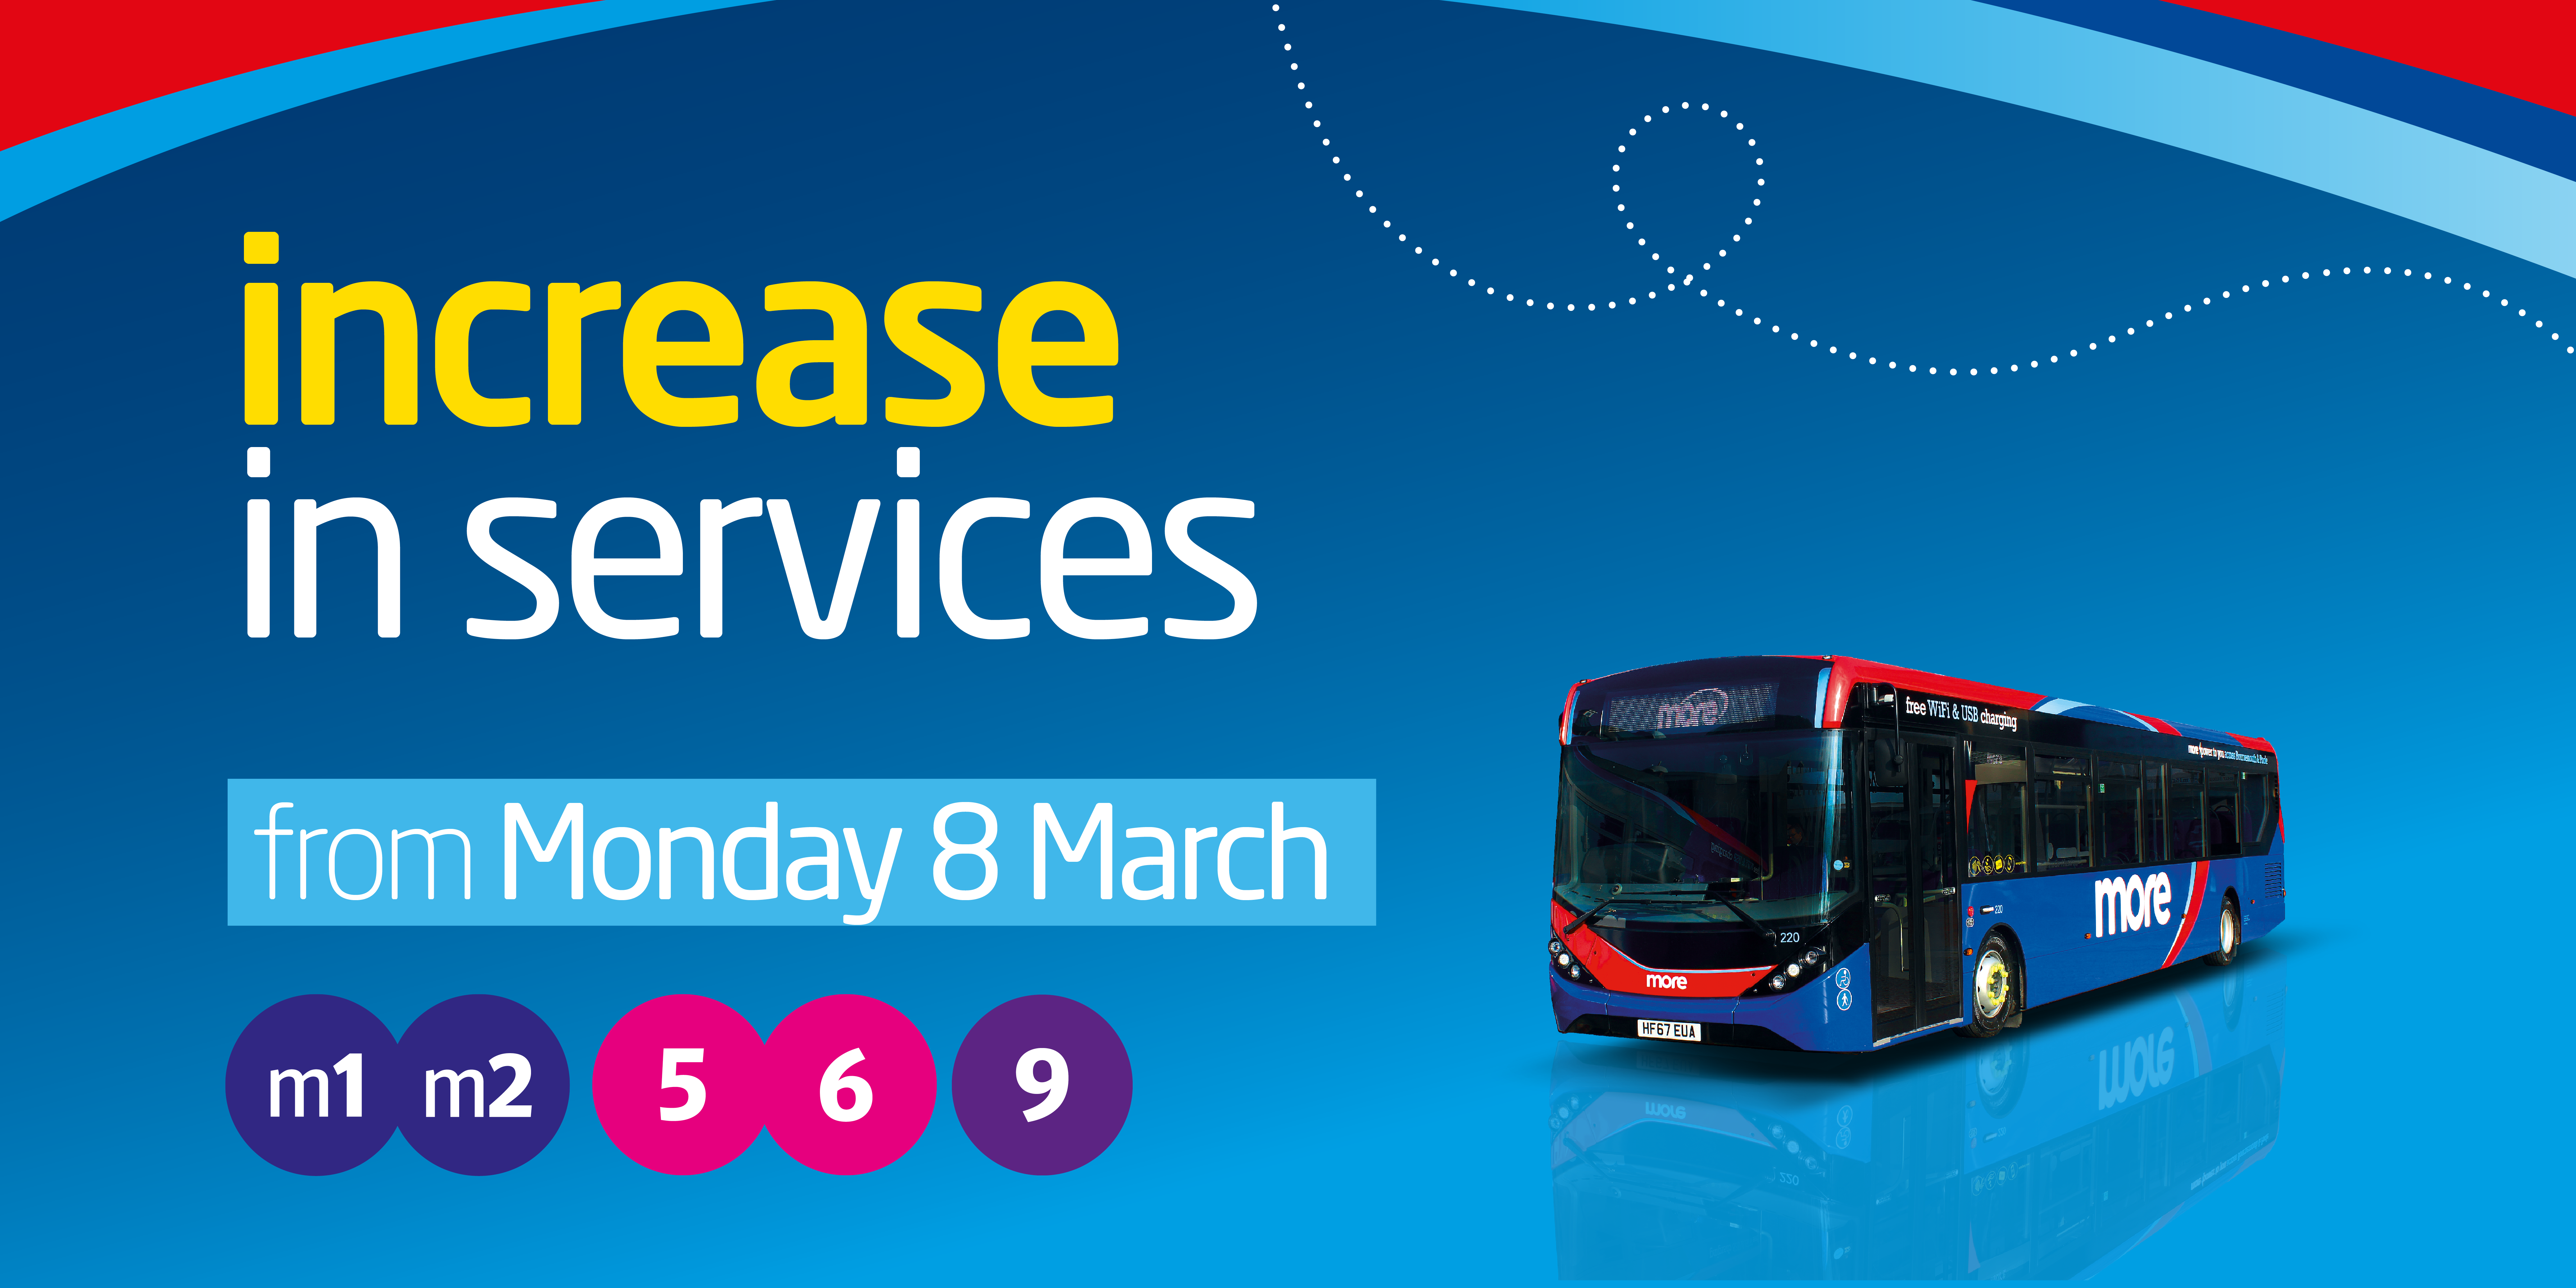 Image of a morebus with text reading 'increase in services from Monday 8th March on m1, m2, 4, 5, 6 and 9'